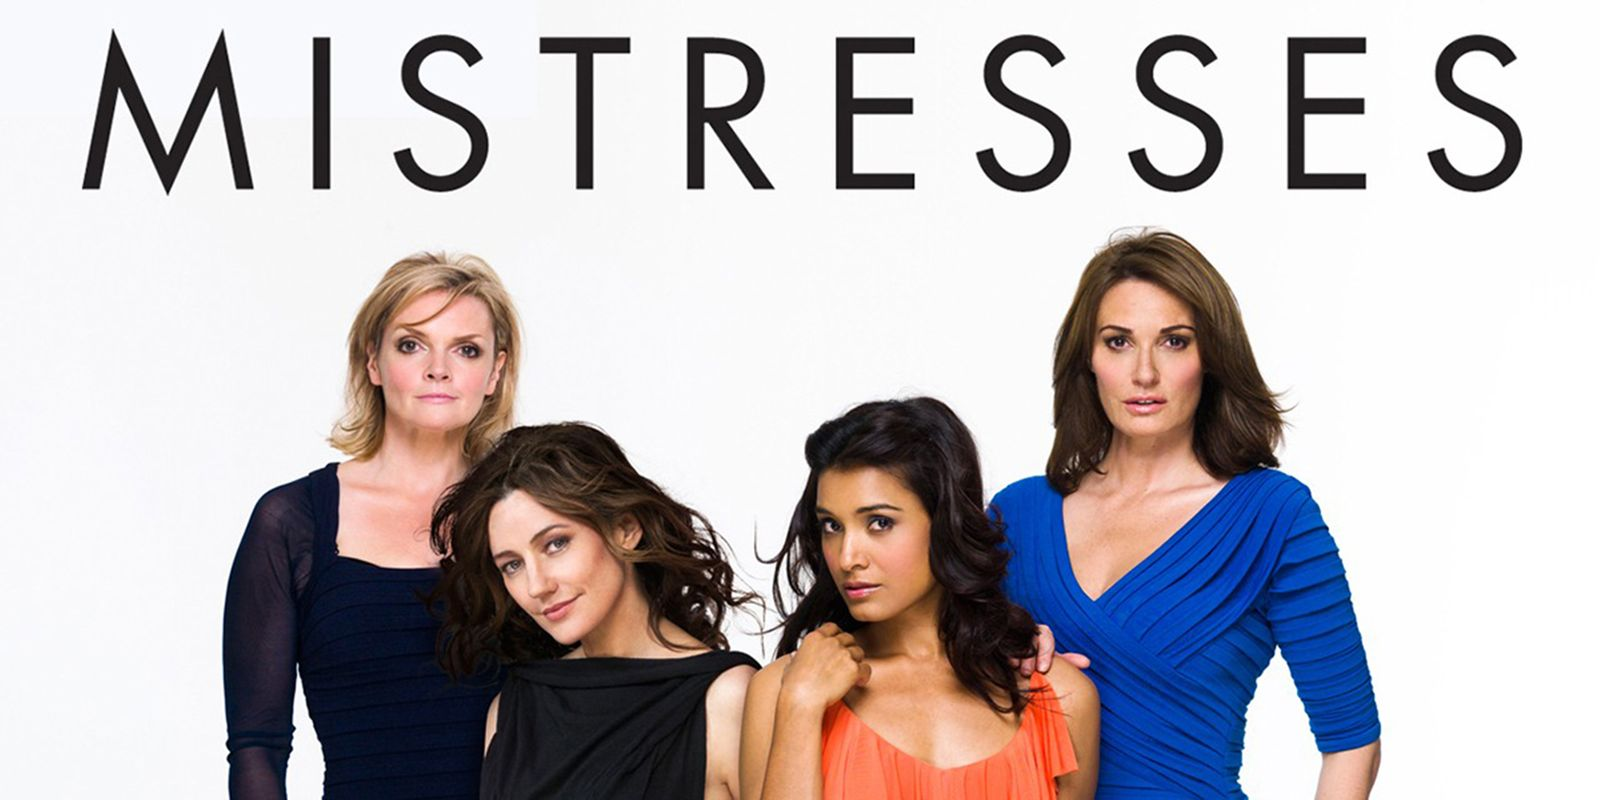 mistresses-crop-rev.jpg